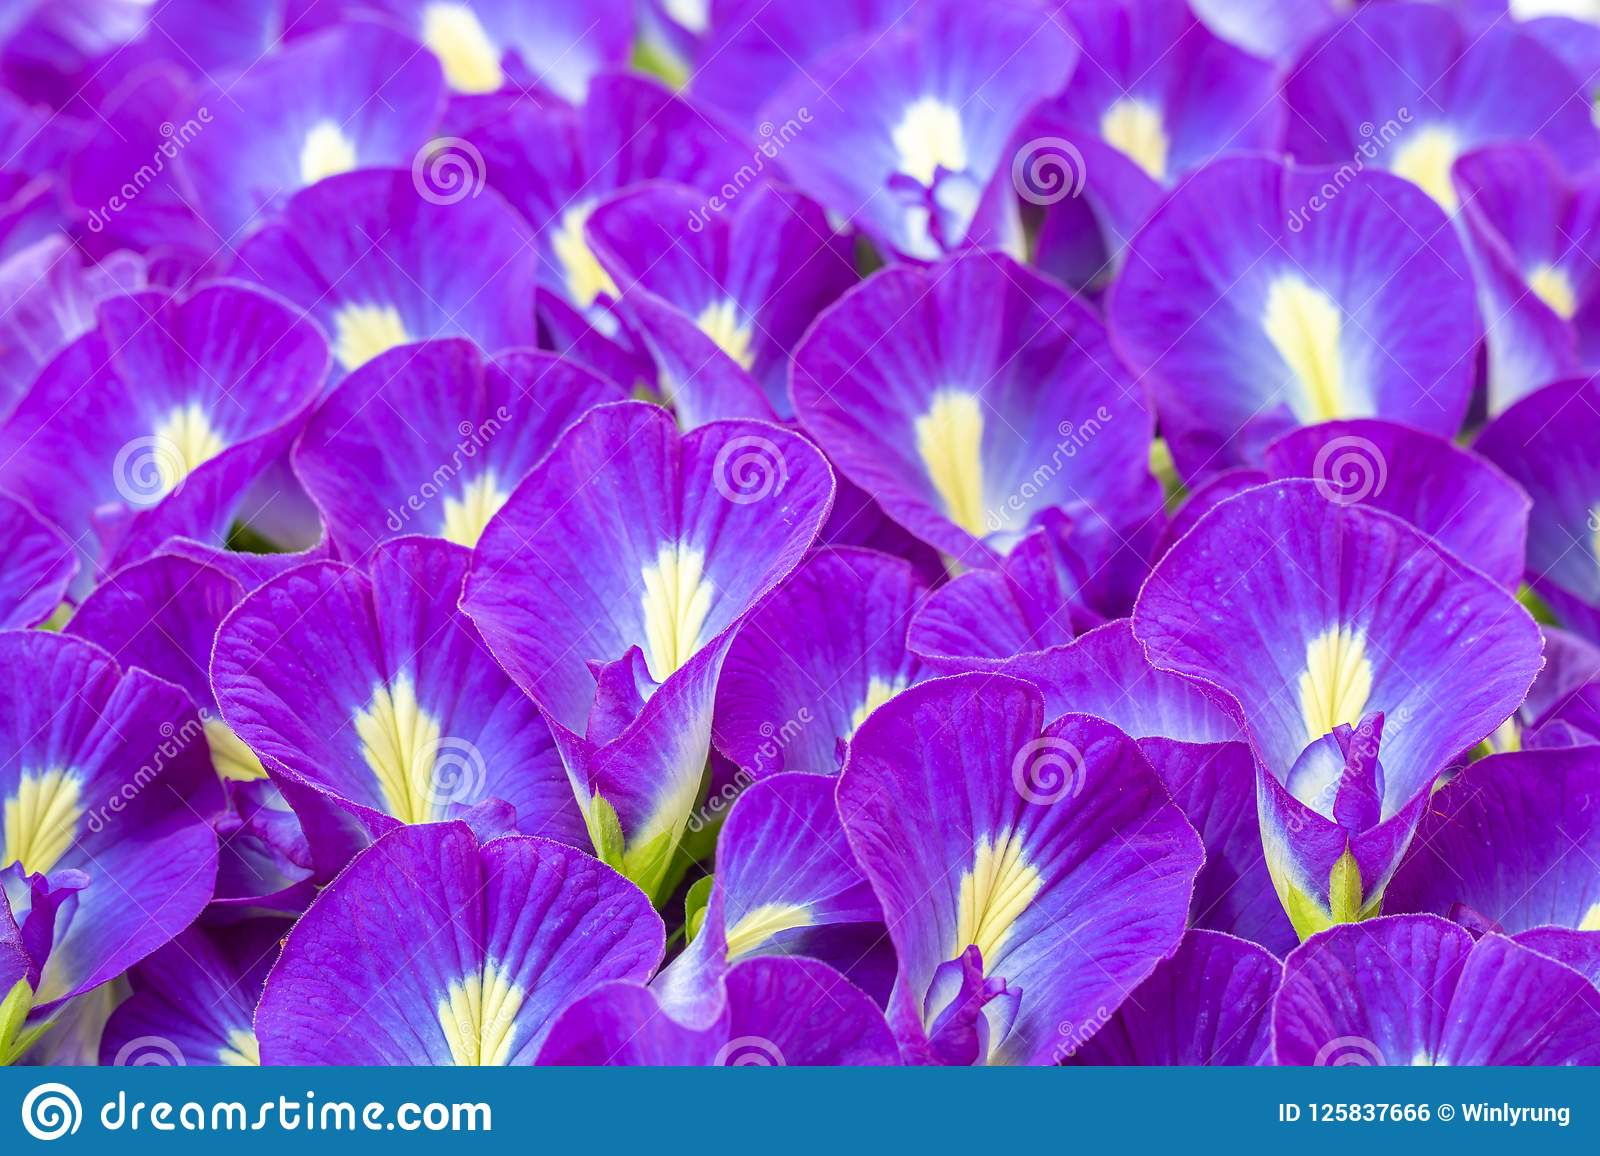 Blue Flowers Background Butterfly Pea Stock Photo Image Of Tree